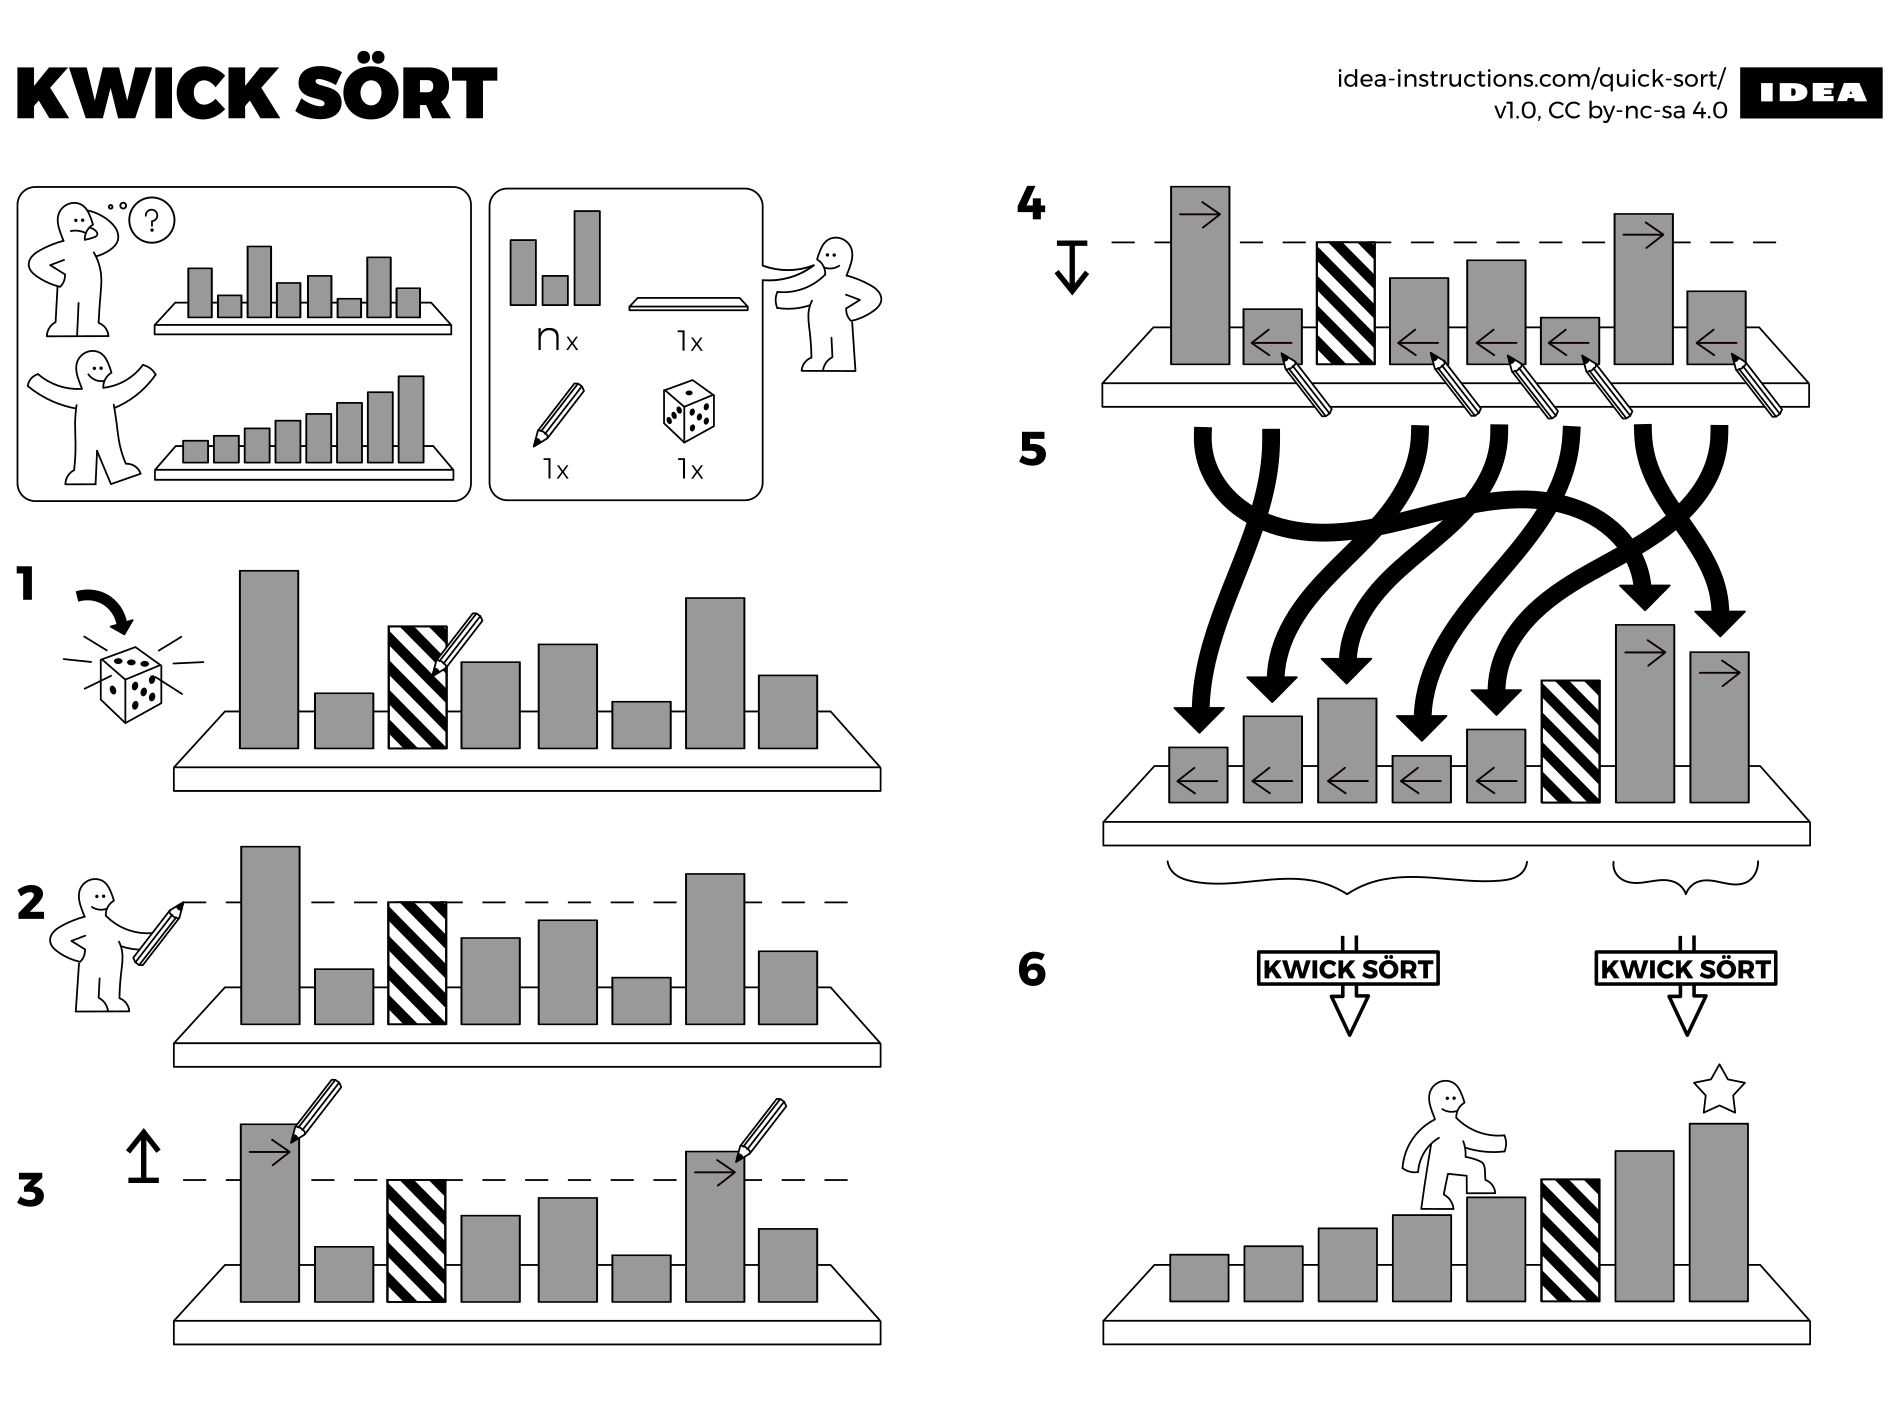 Algorithms drawn as IKEA furniture instructions